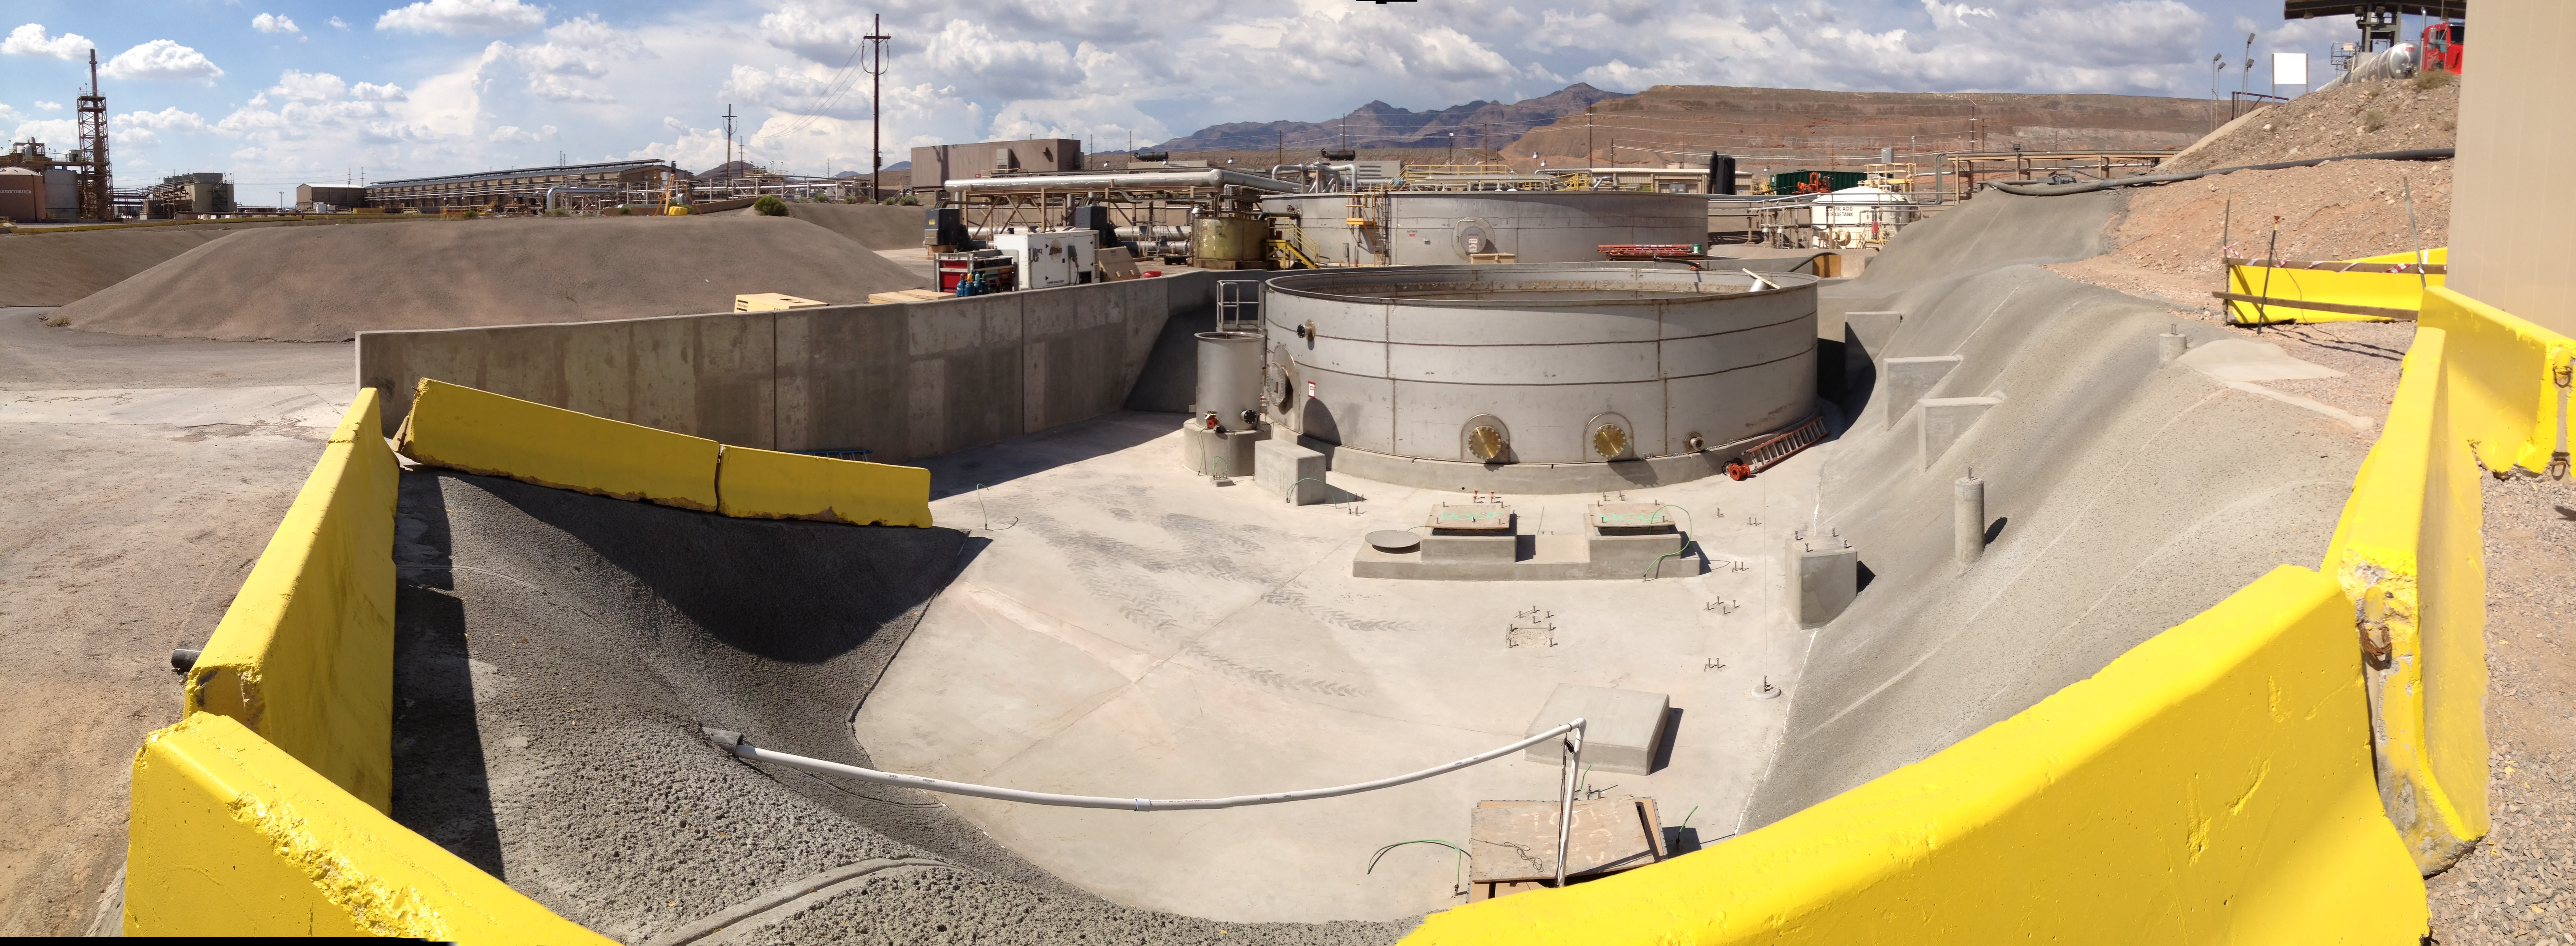 Hanlon Engineering Raffinate Tank and Containment